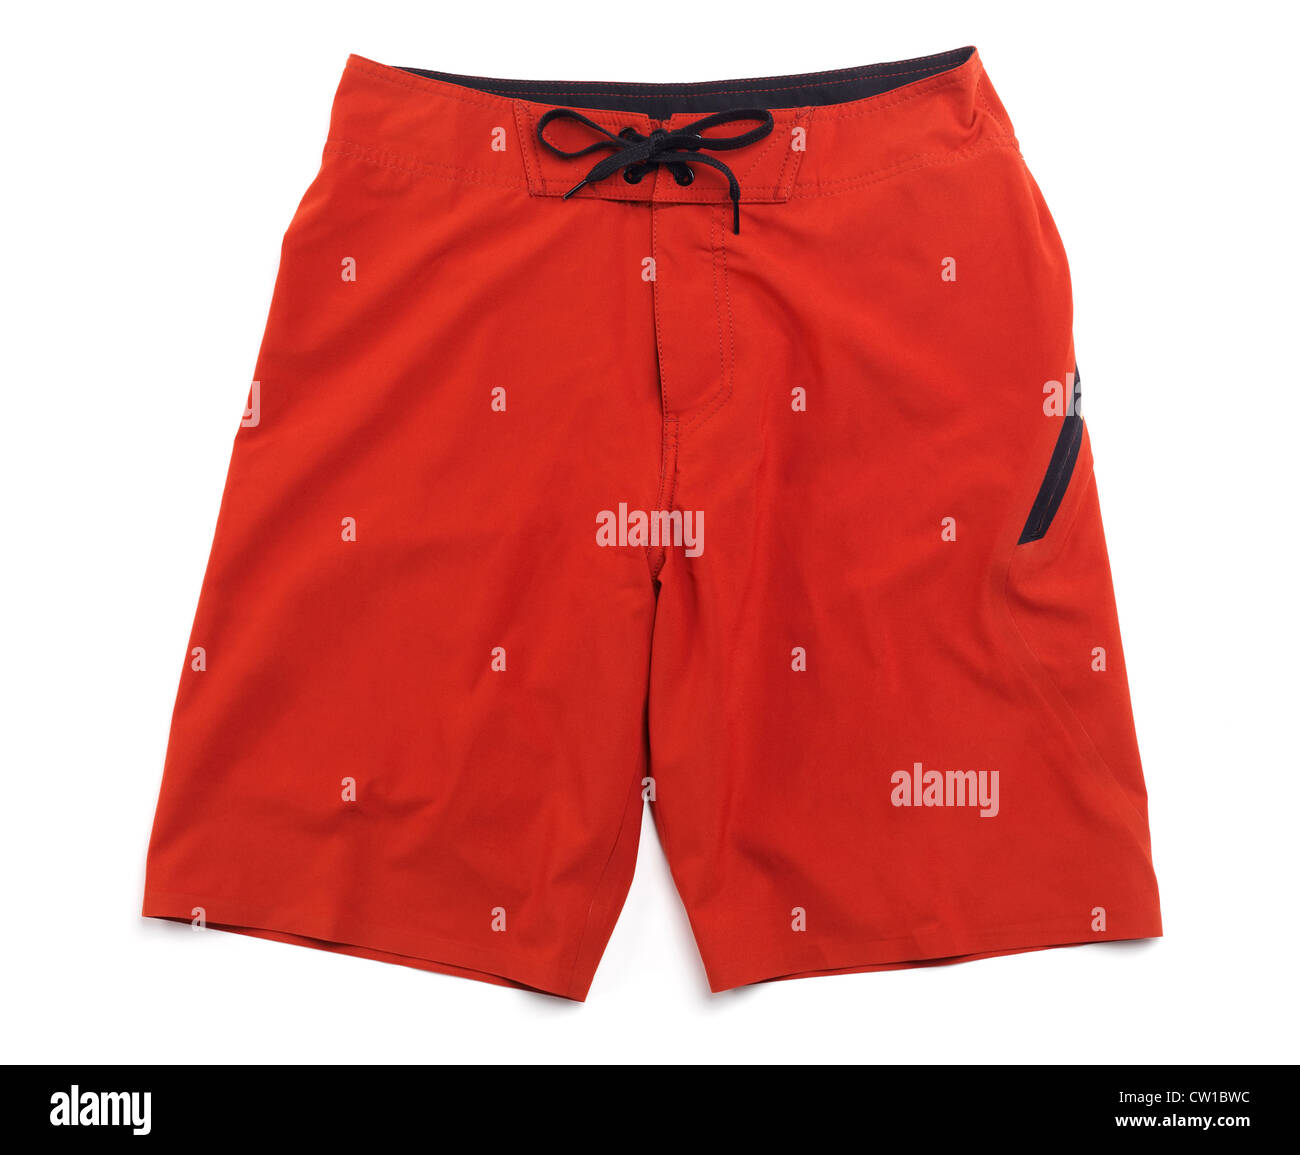 Les slips, shorts rouge isolé sur fond blanc Photo Stock